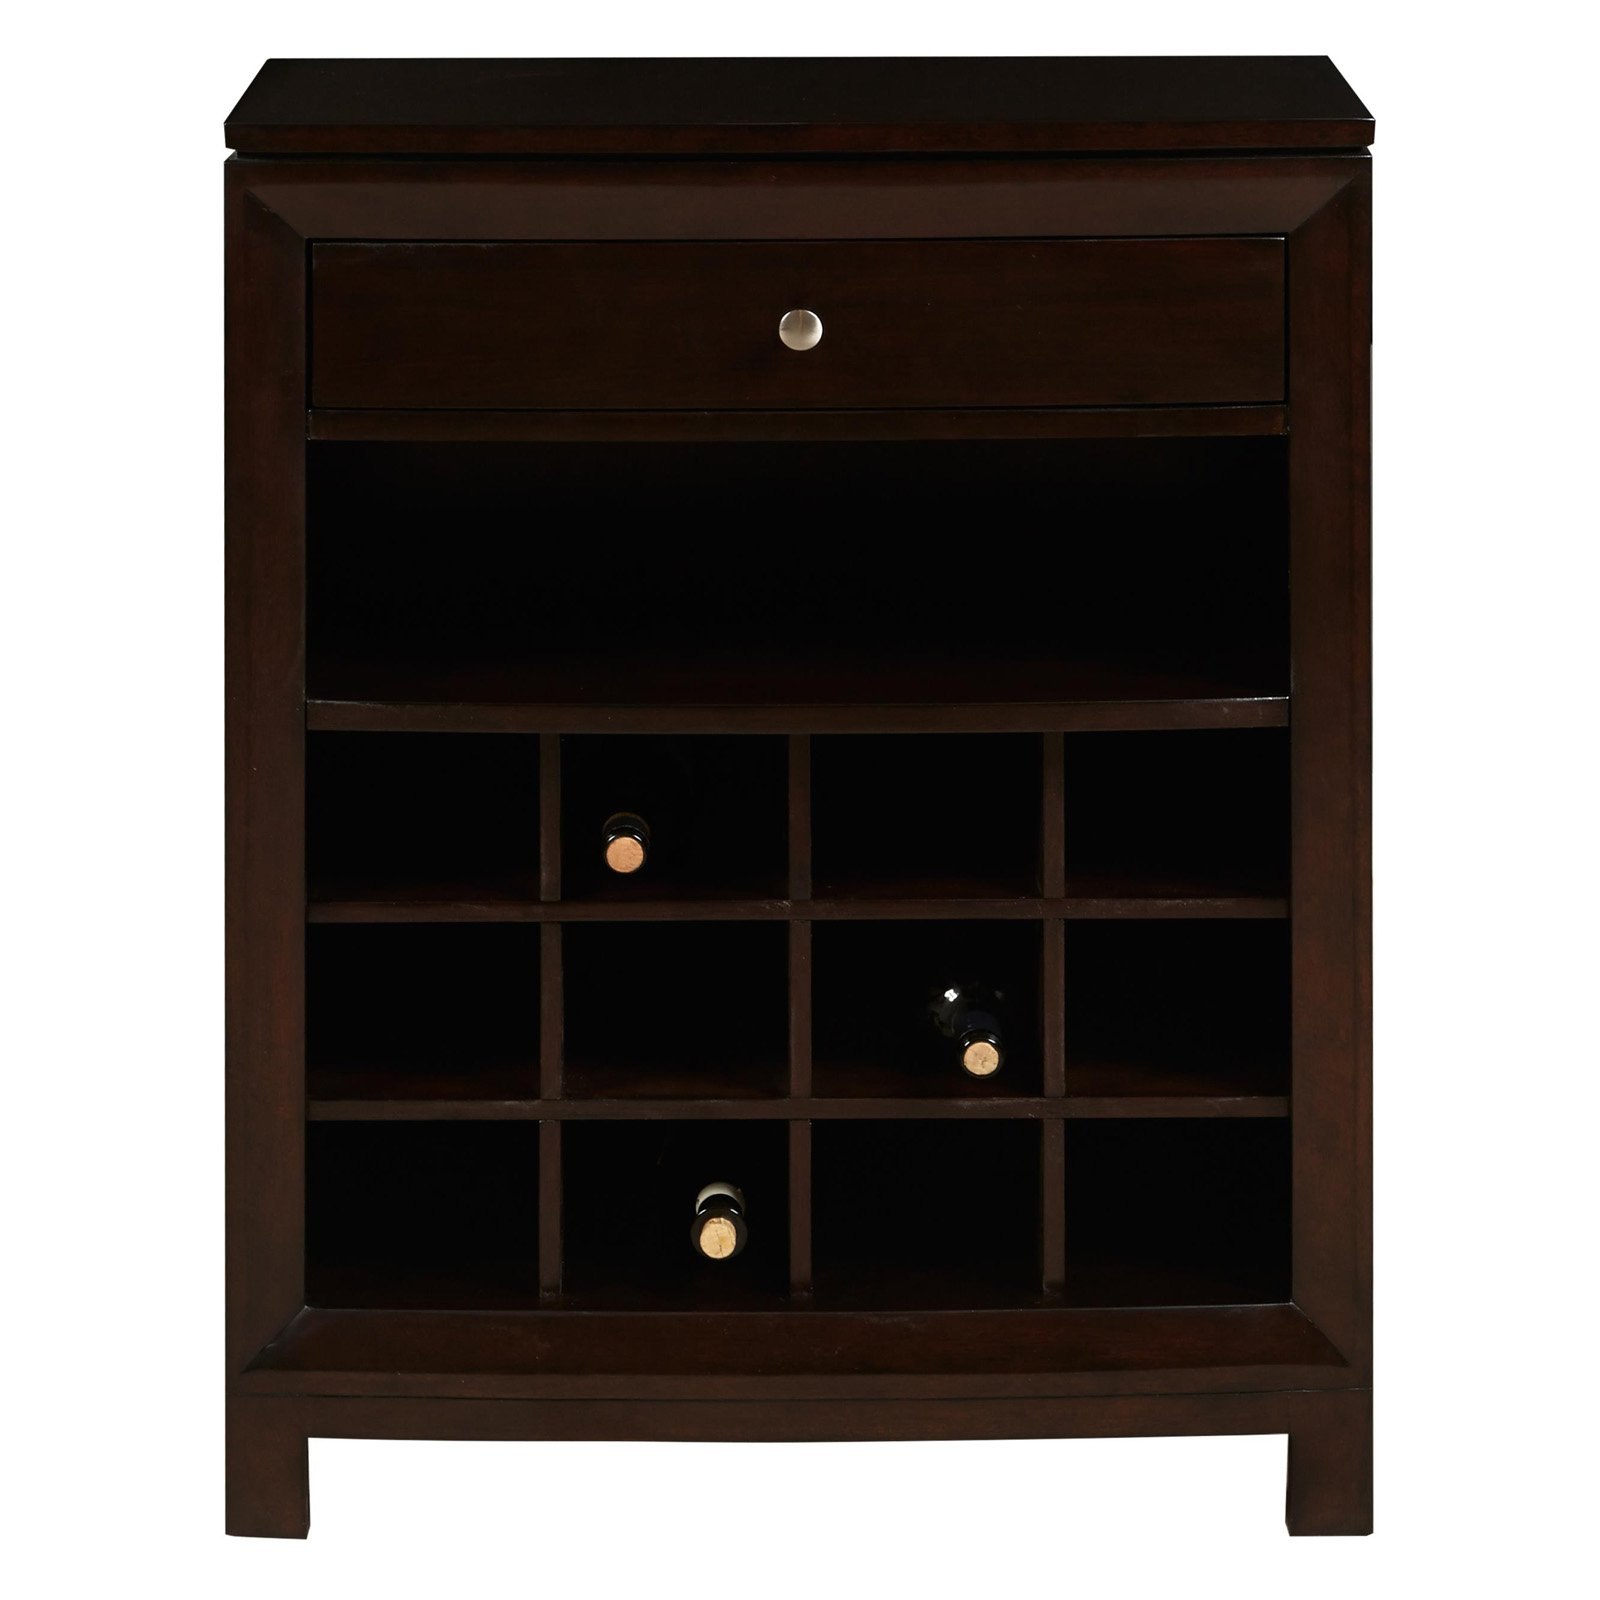 Wine Cabinet, Dark wood